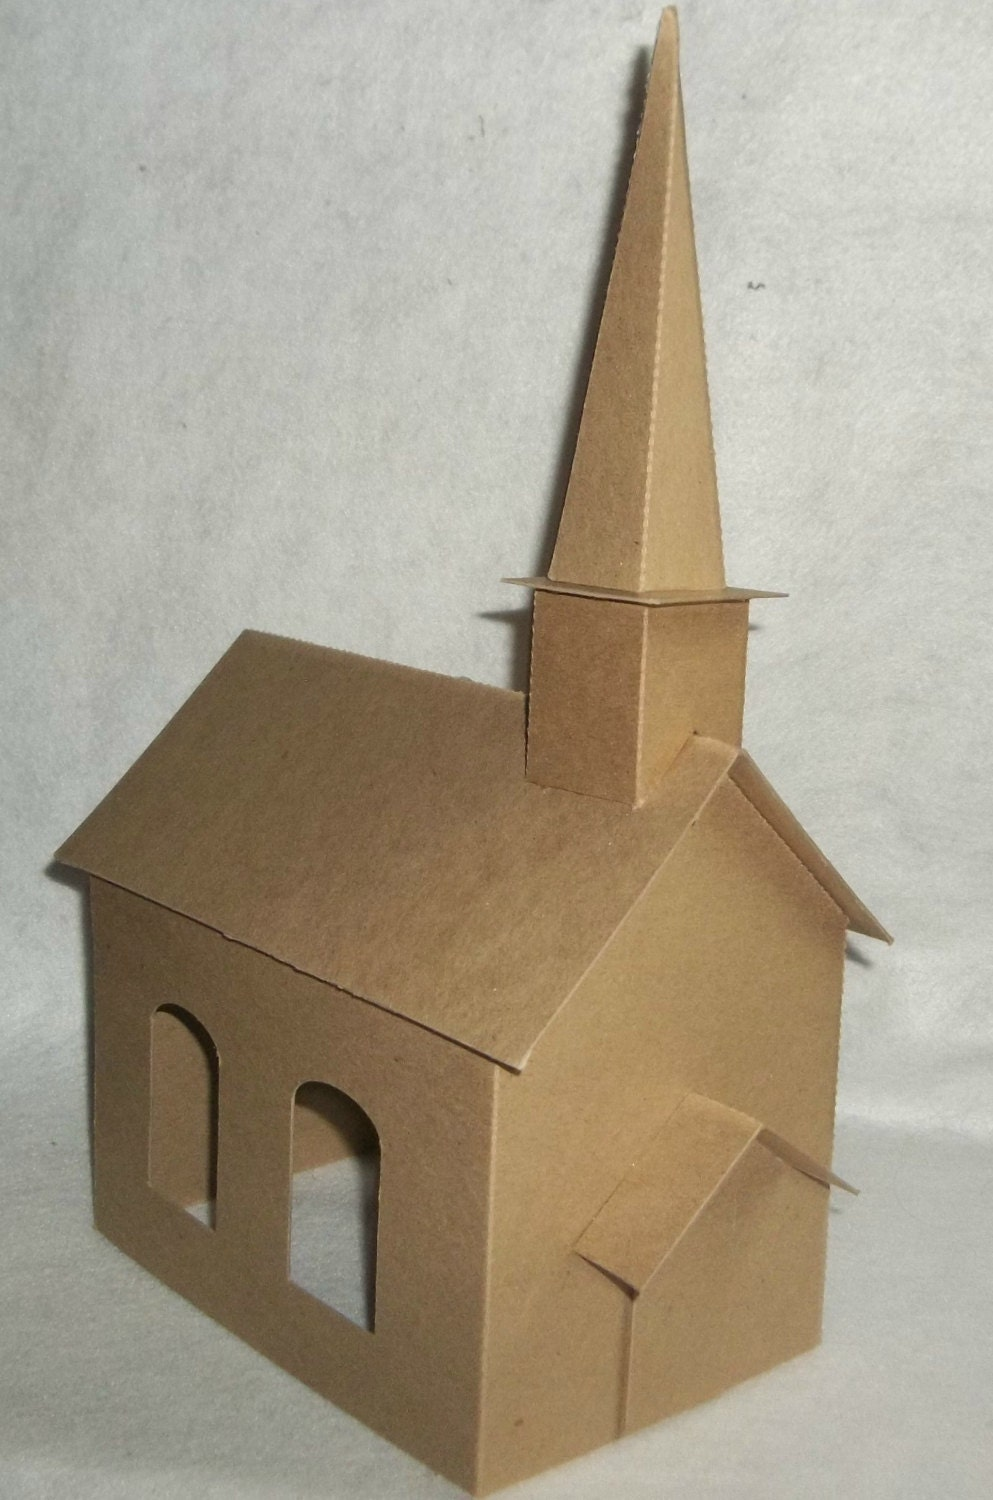 Large church with steeple diy putz style cardboard church for How do you make paper mache glue at home